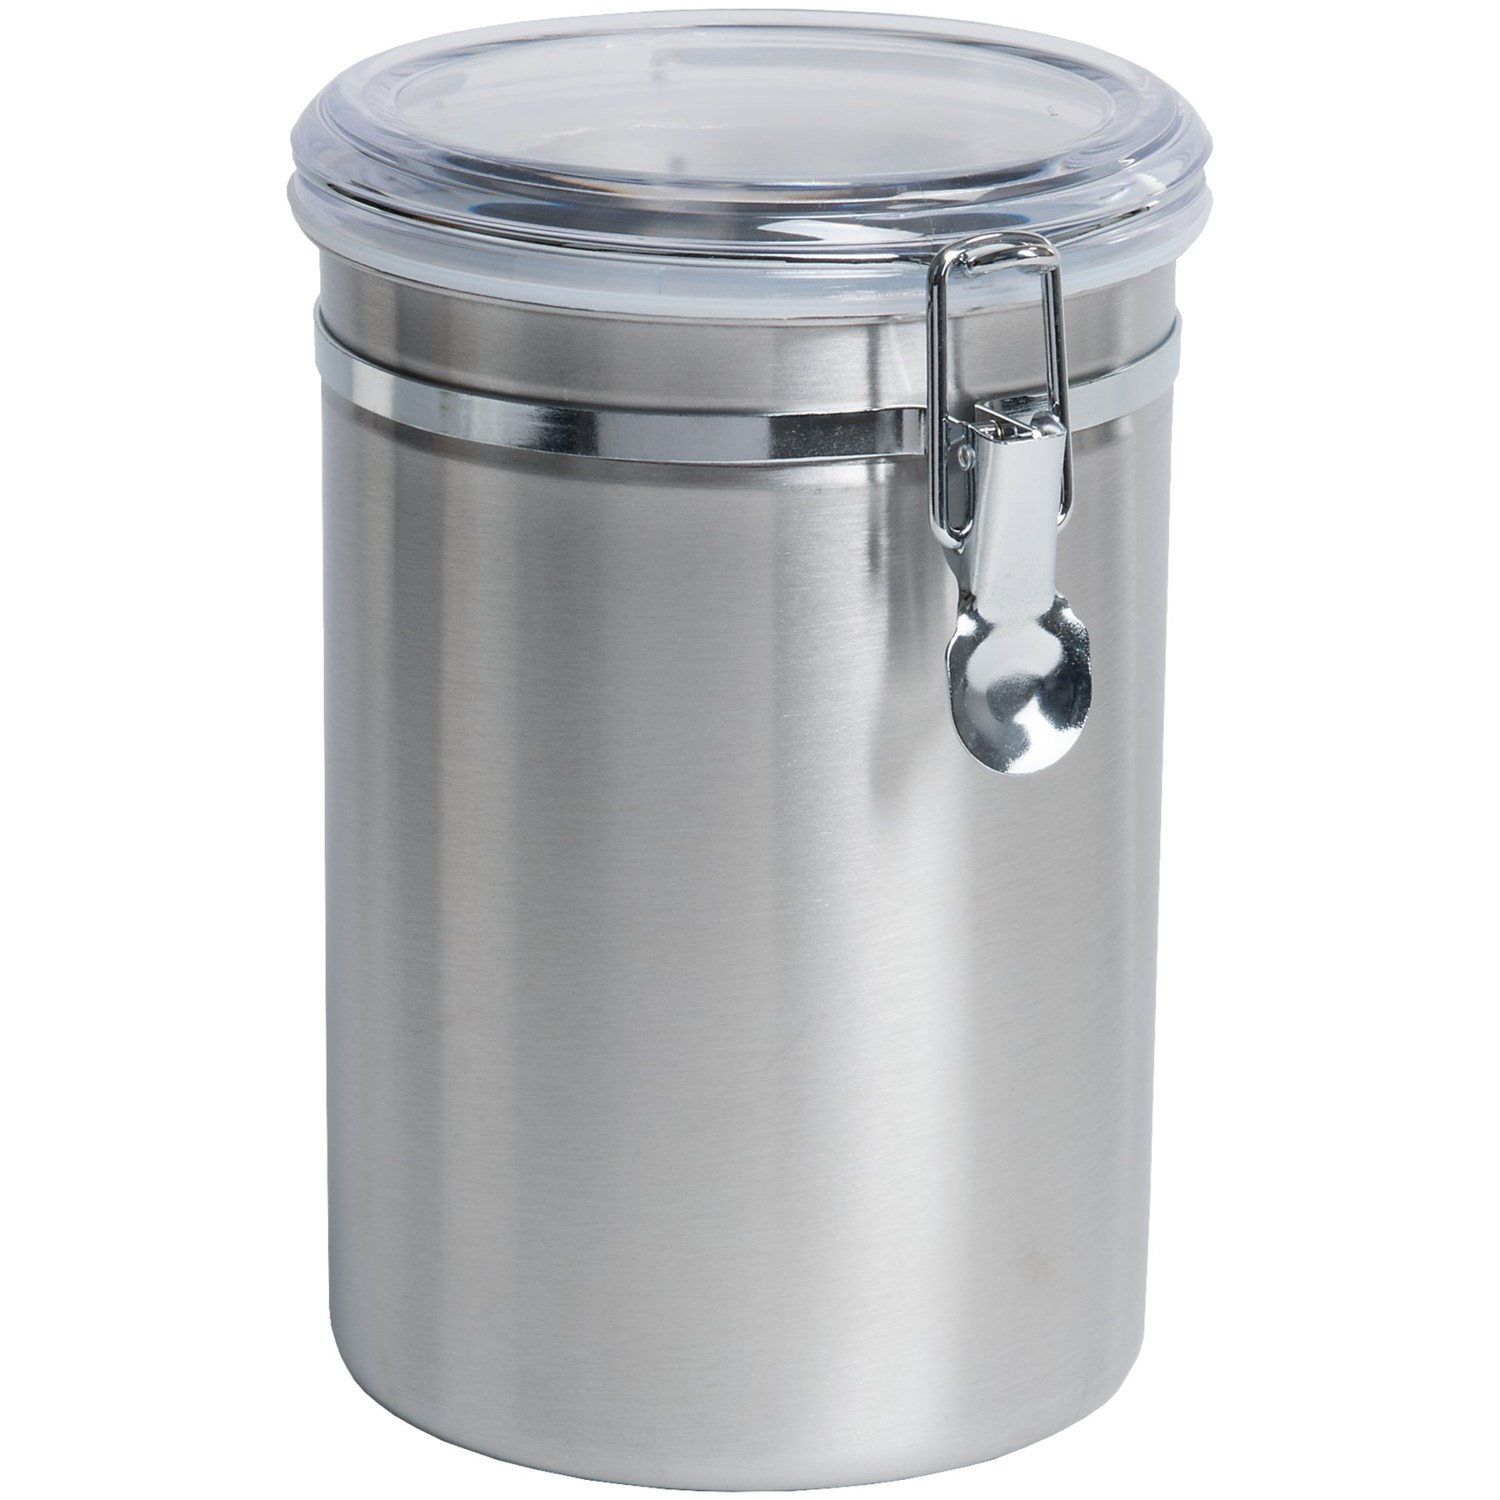 Oggi Airtight Stainless Steel Canister 60 Oz Save 28